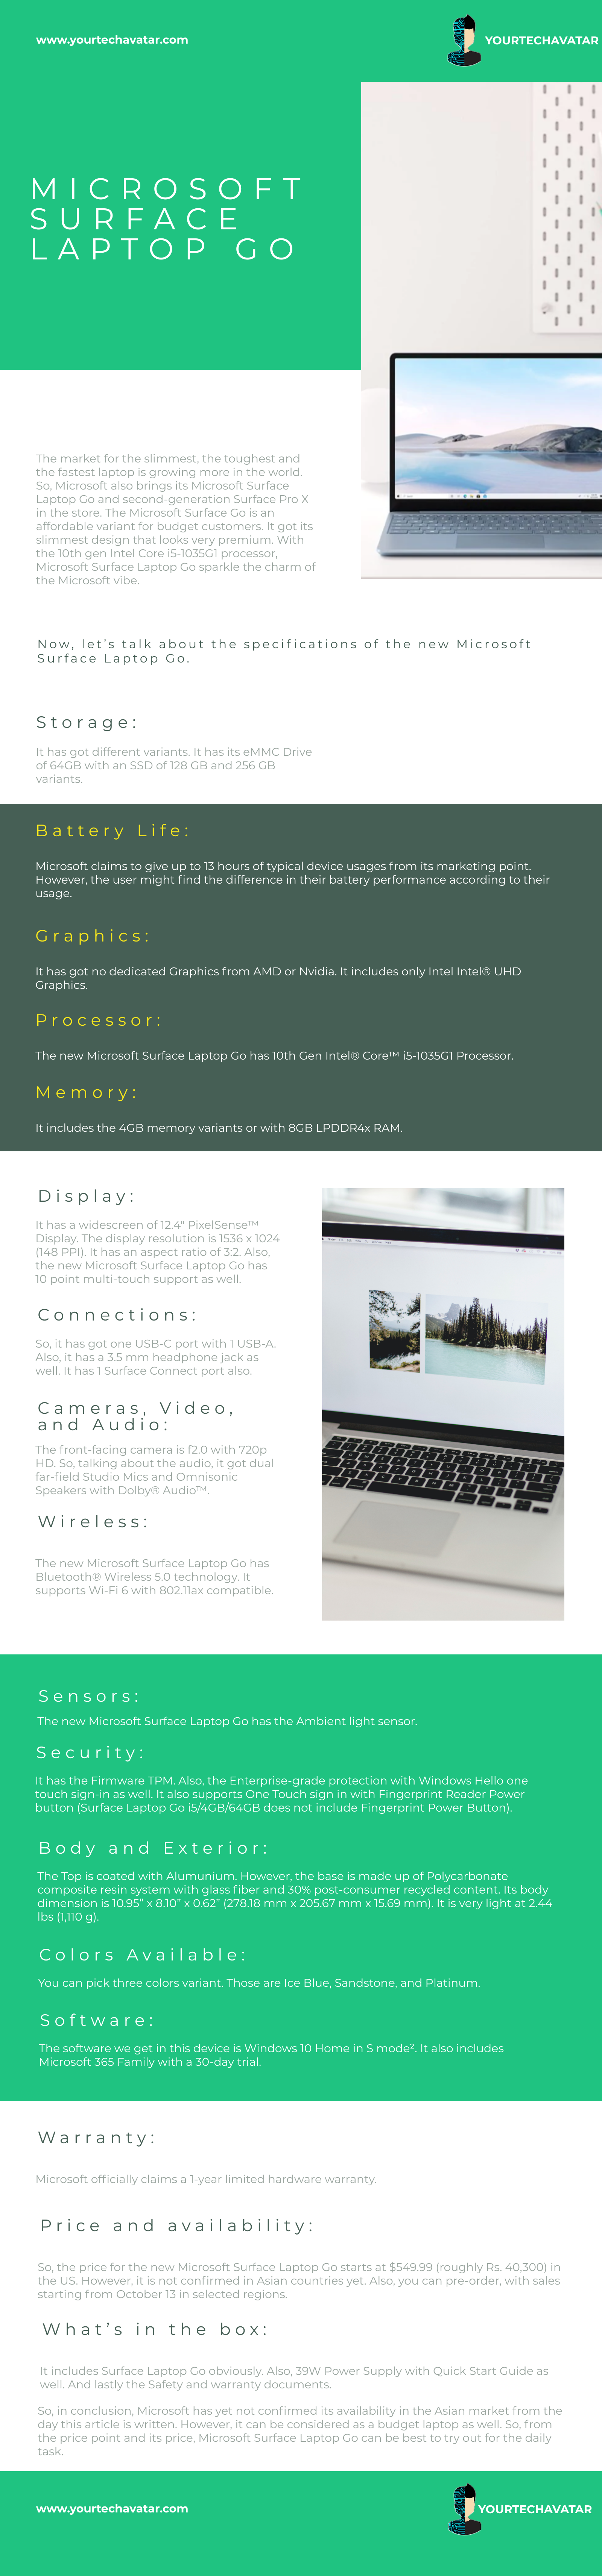 Infographic for Microsoft Surface Laptop Go